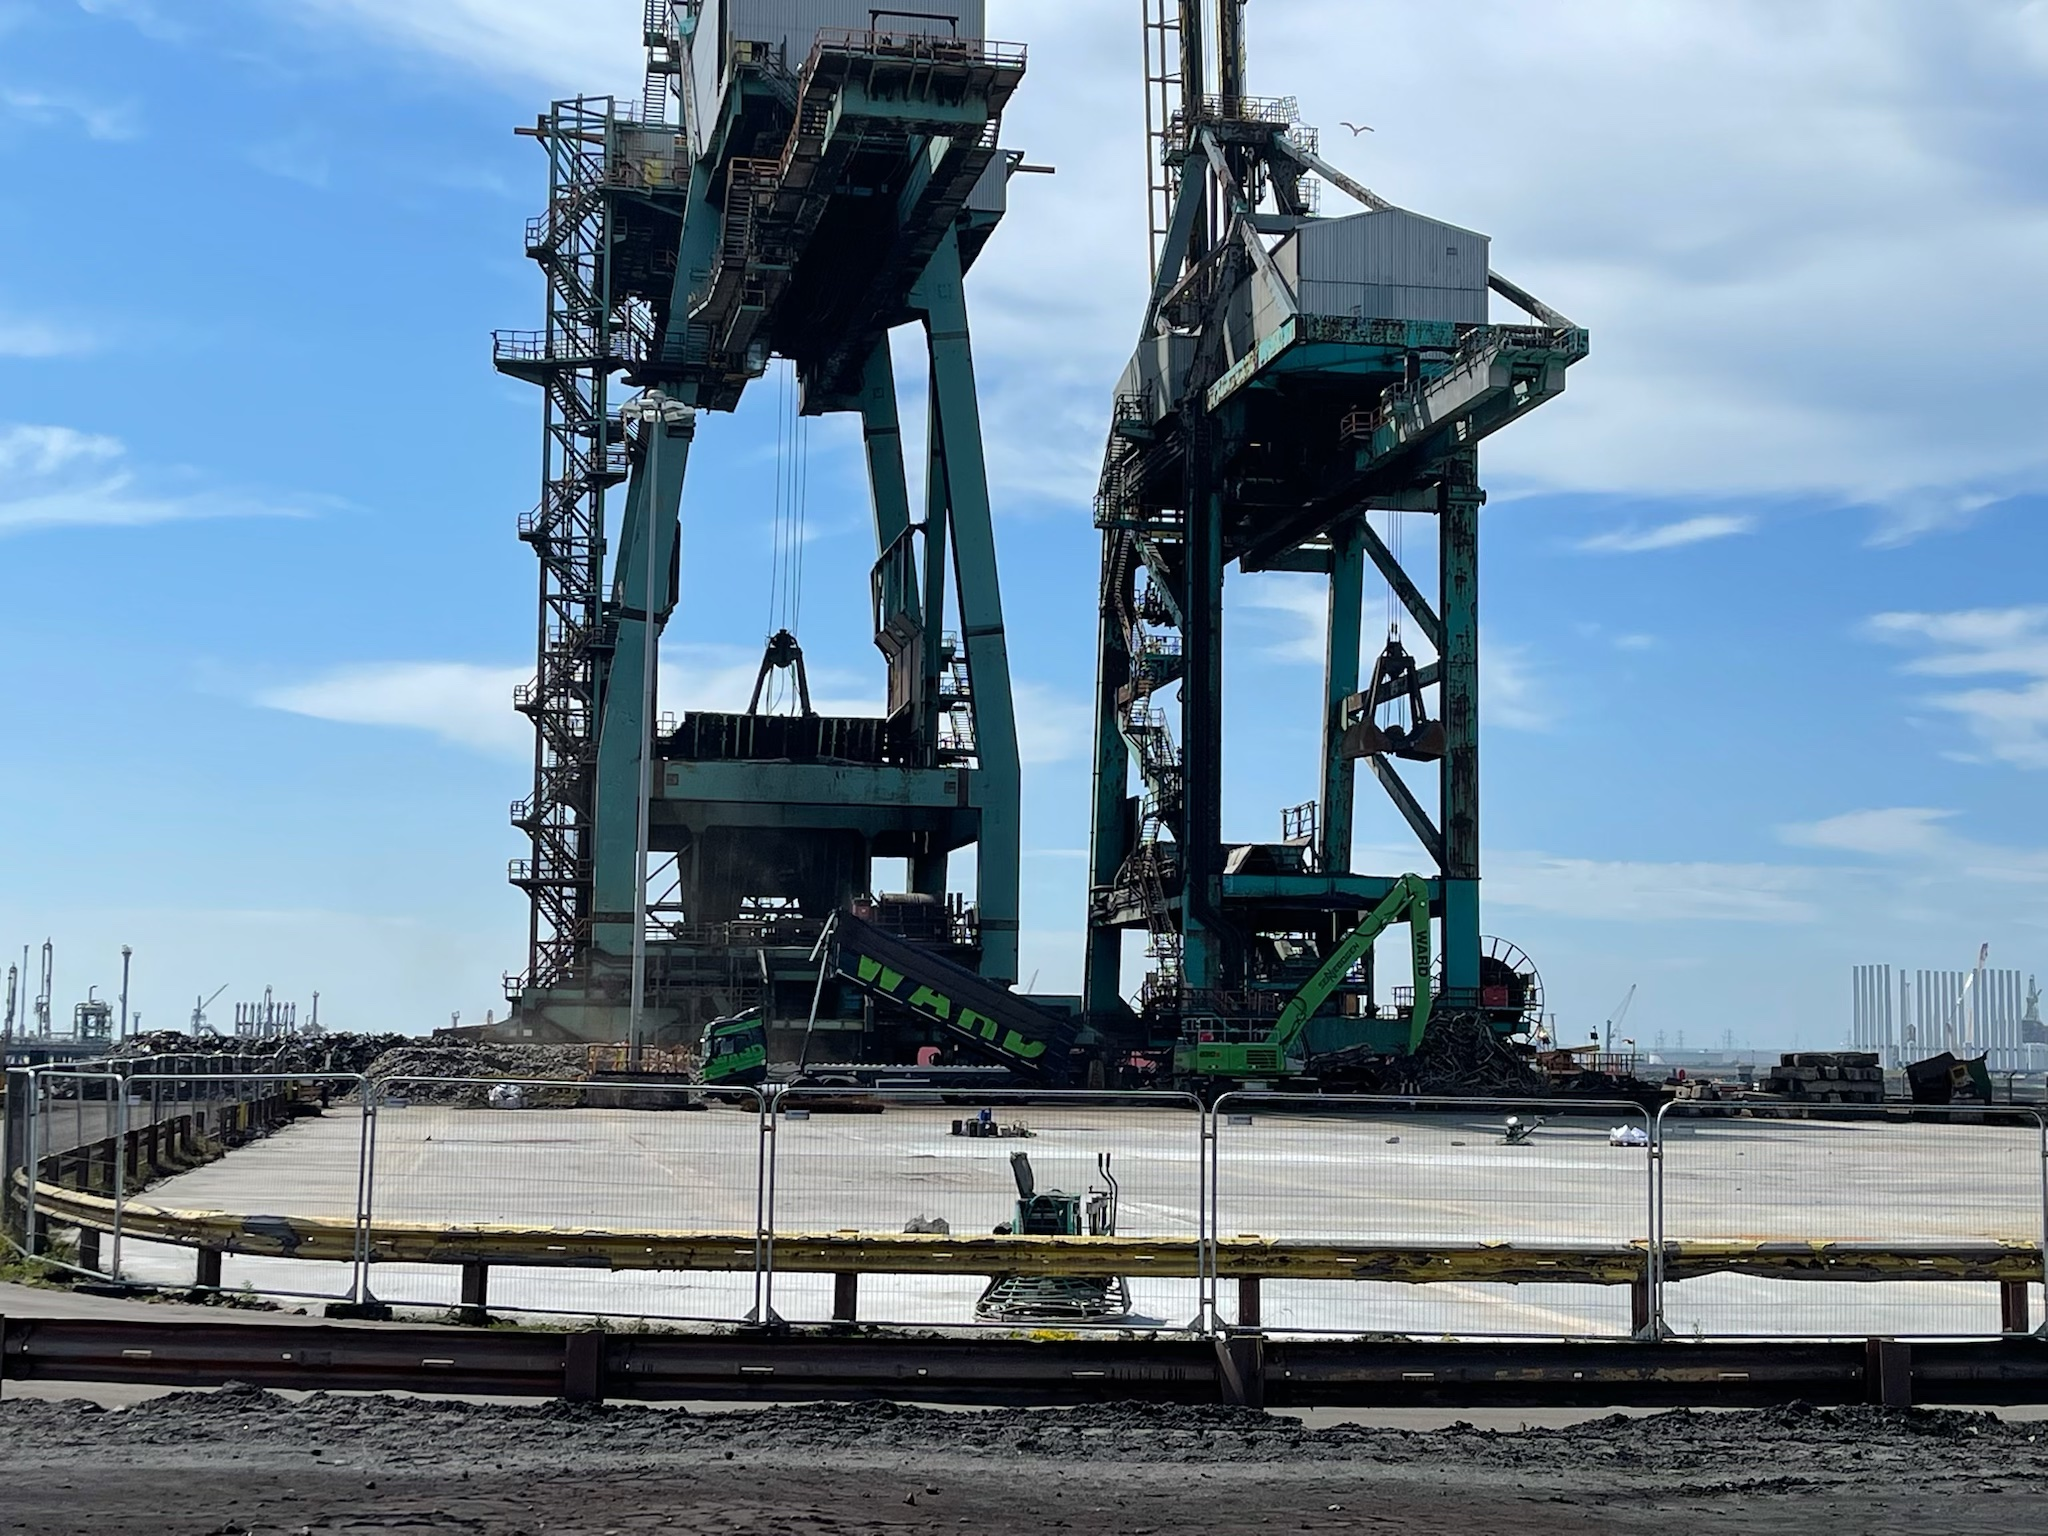 Metal recycling firm expands capabilities in the North East with second deep sea port